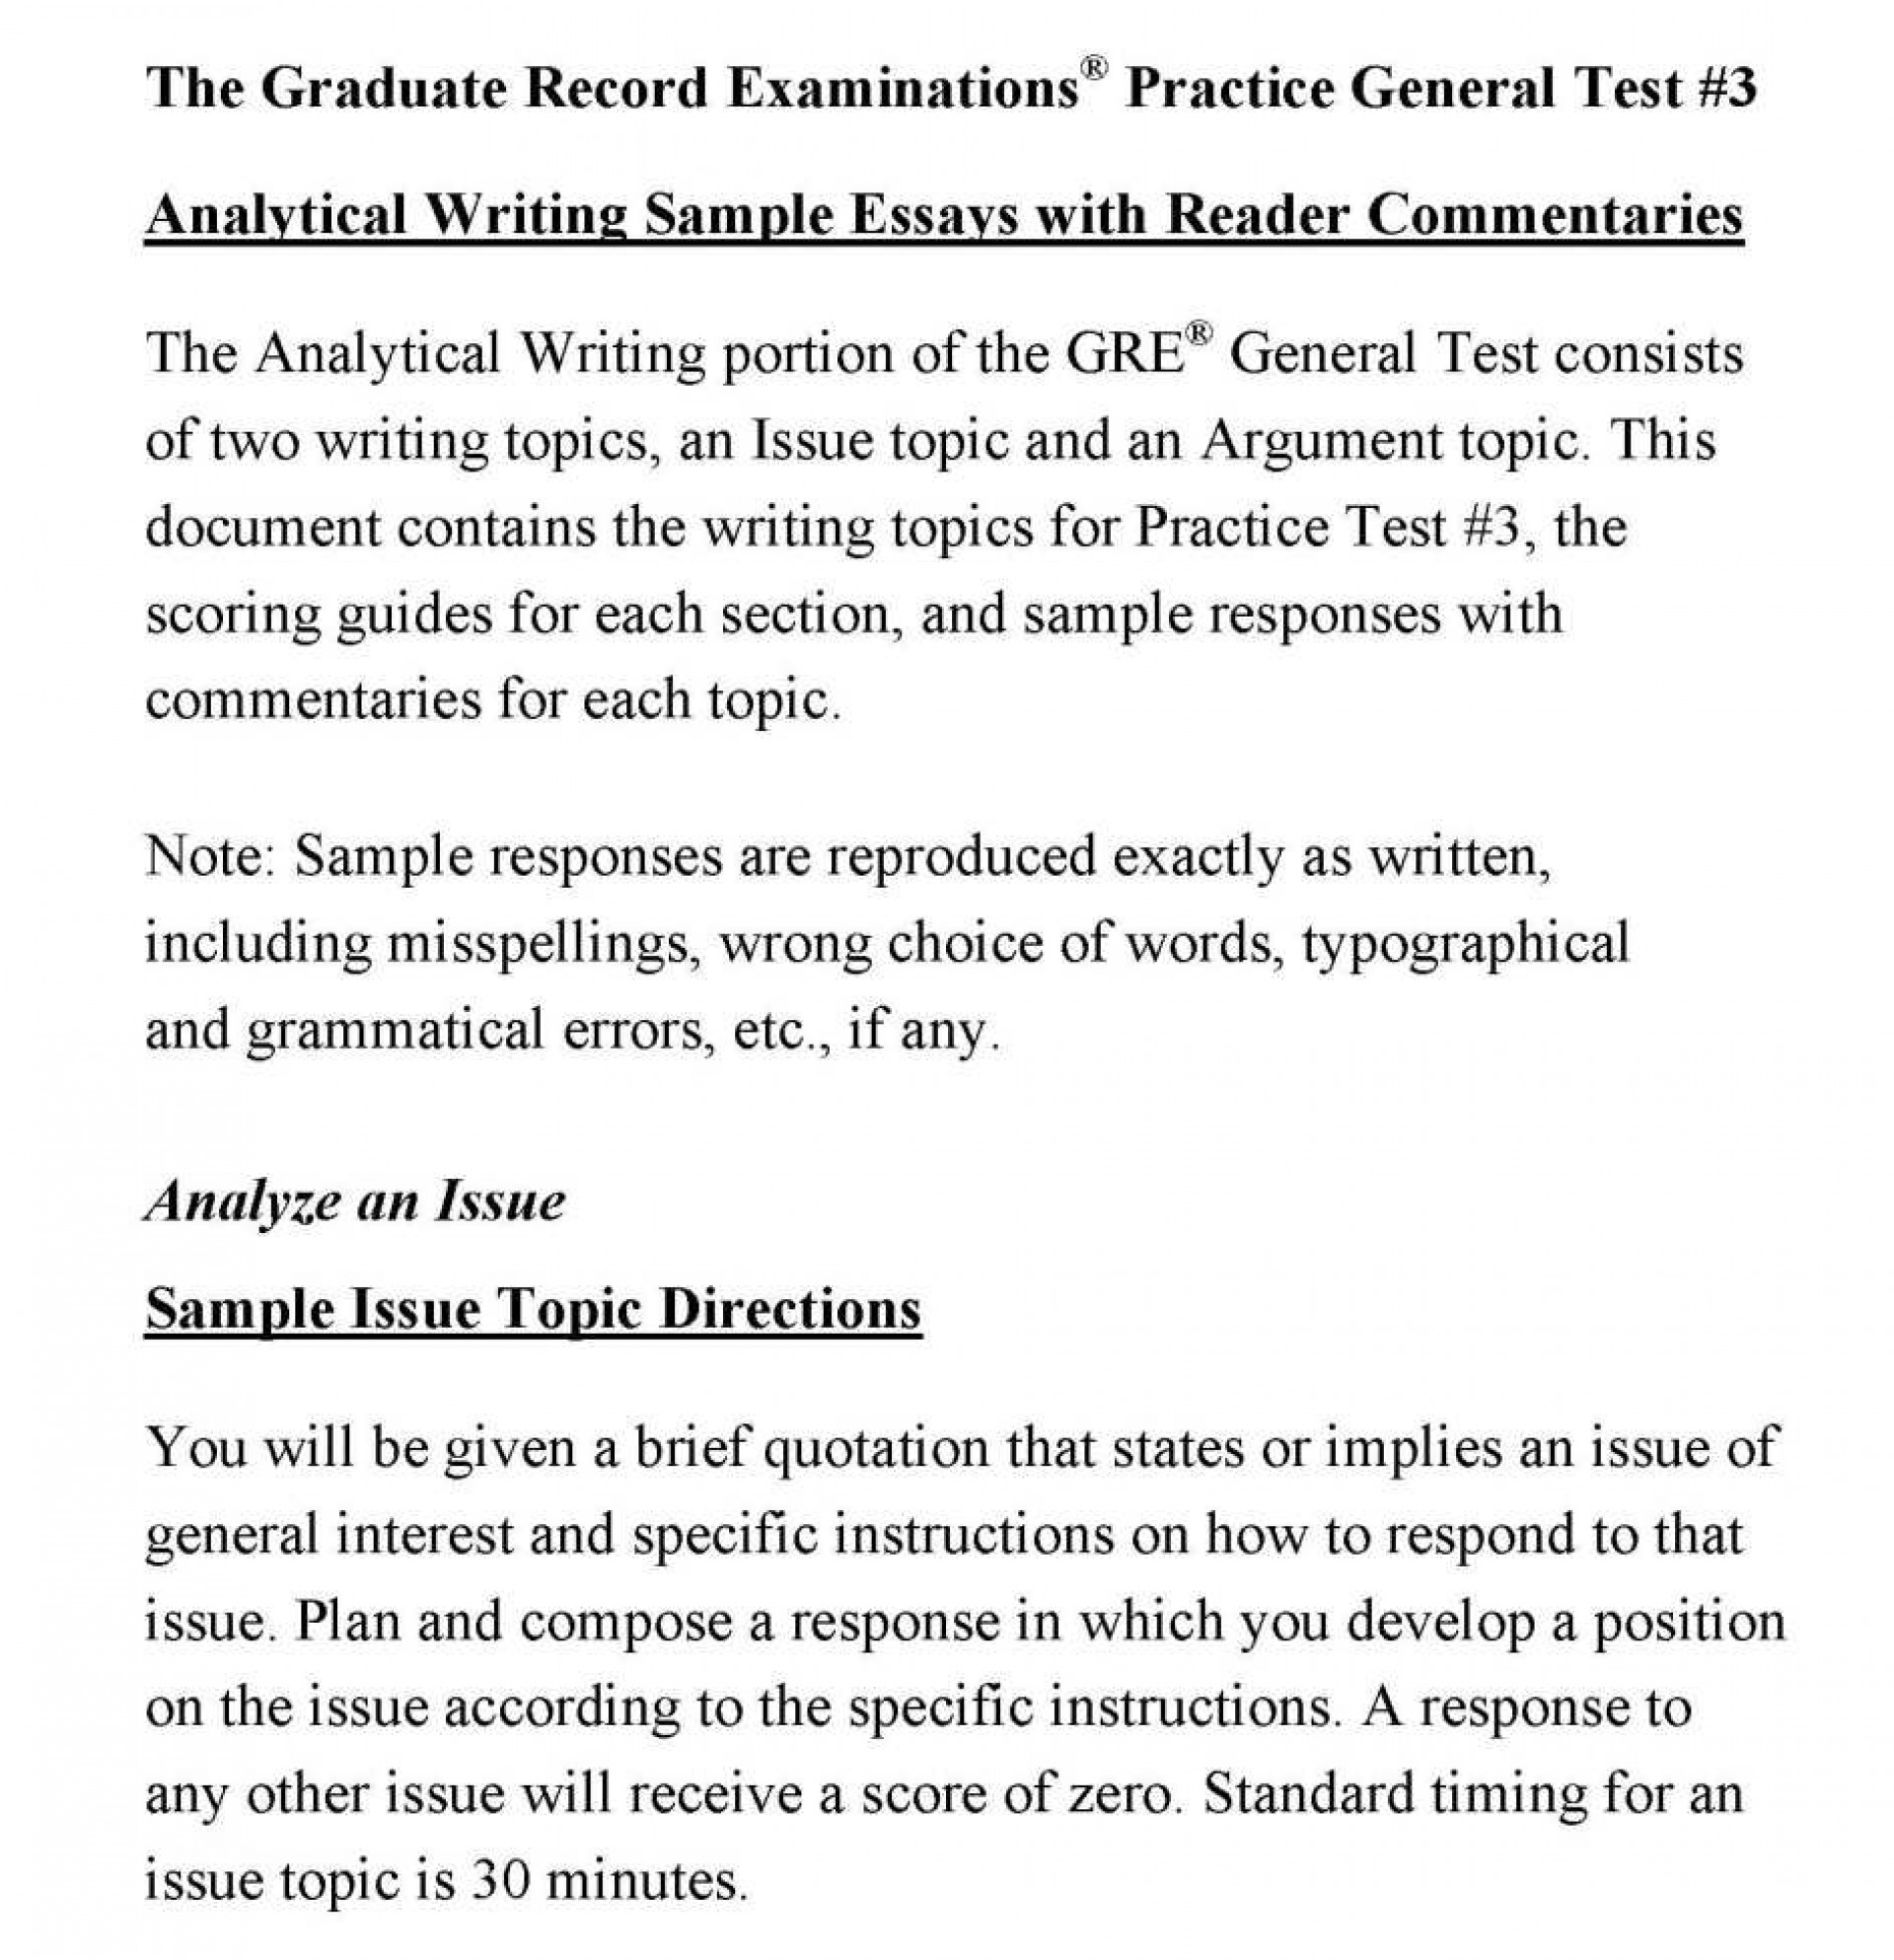 017 Gre Argument Essay Template Analytical Writing Samples Frightening Example 1920